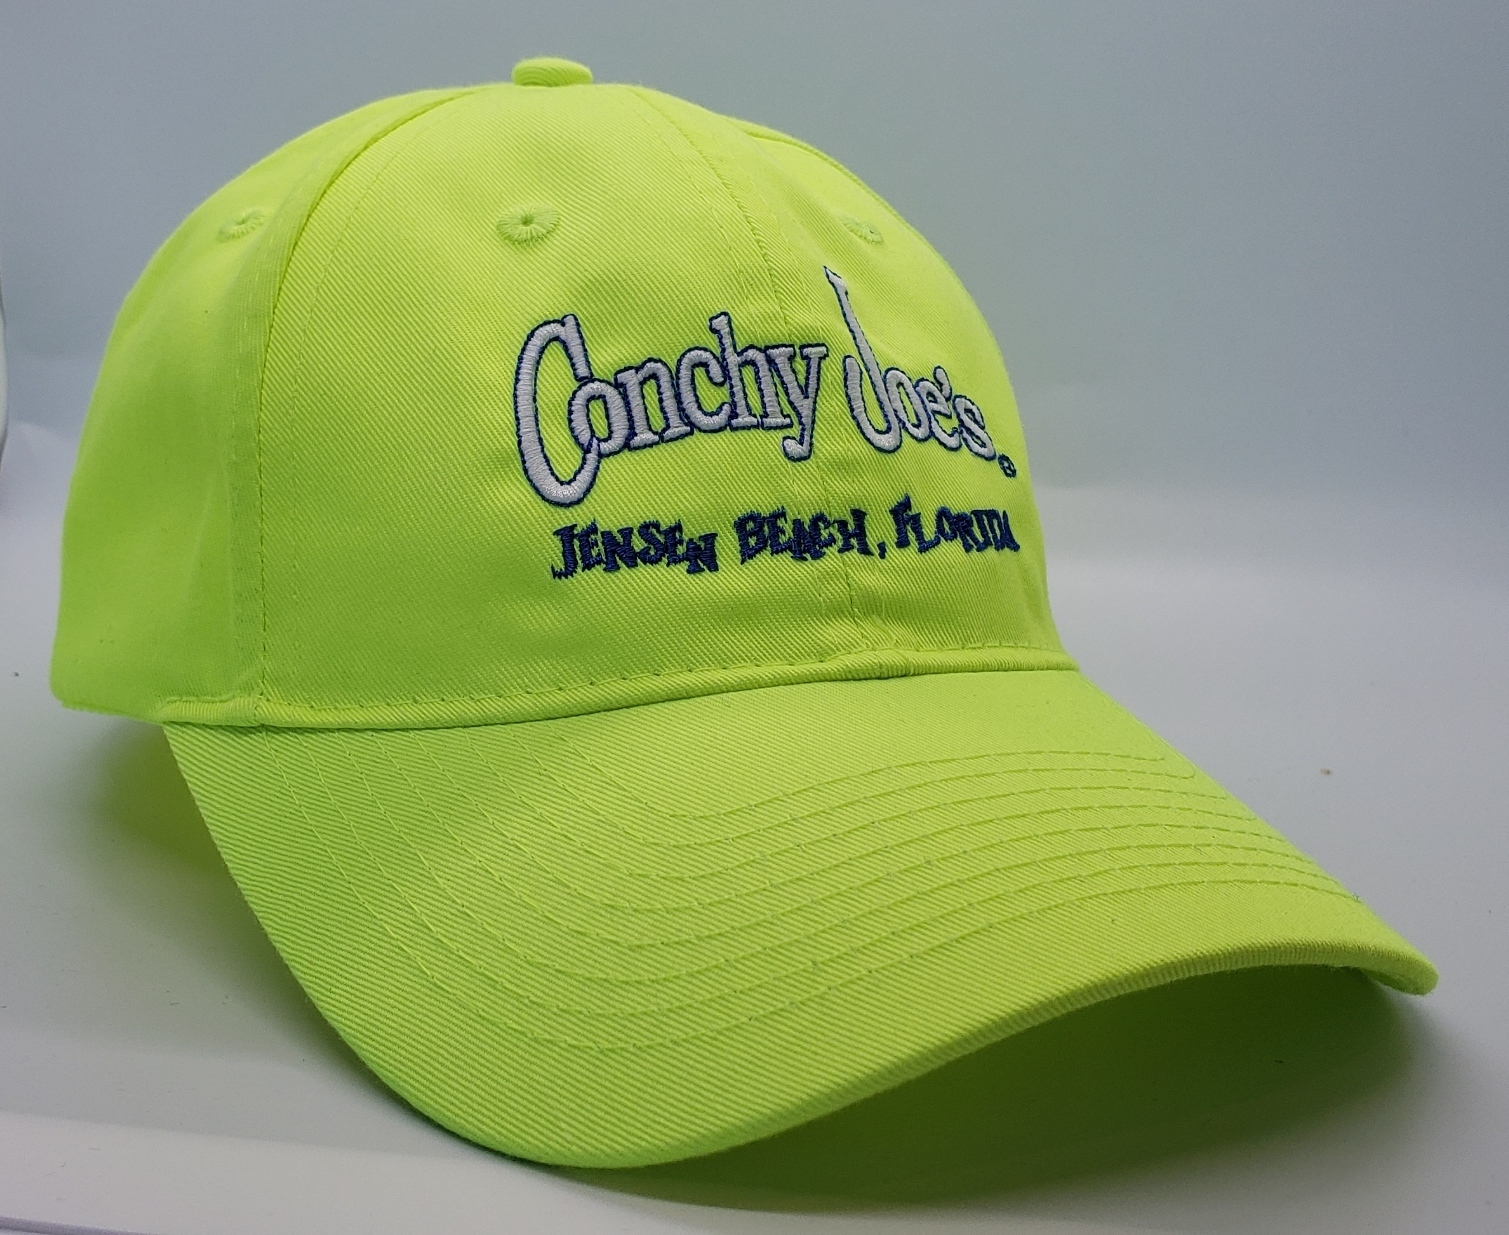 Cj's Neon Yellow Adjustable Baseball Cap